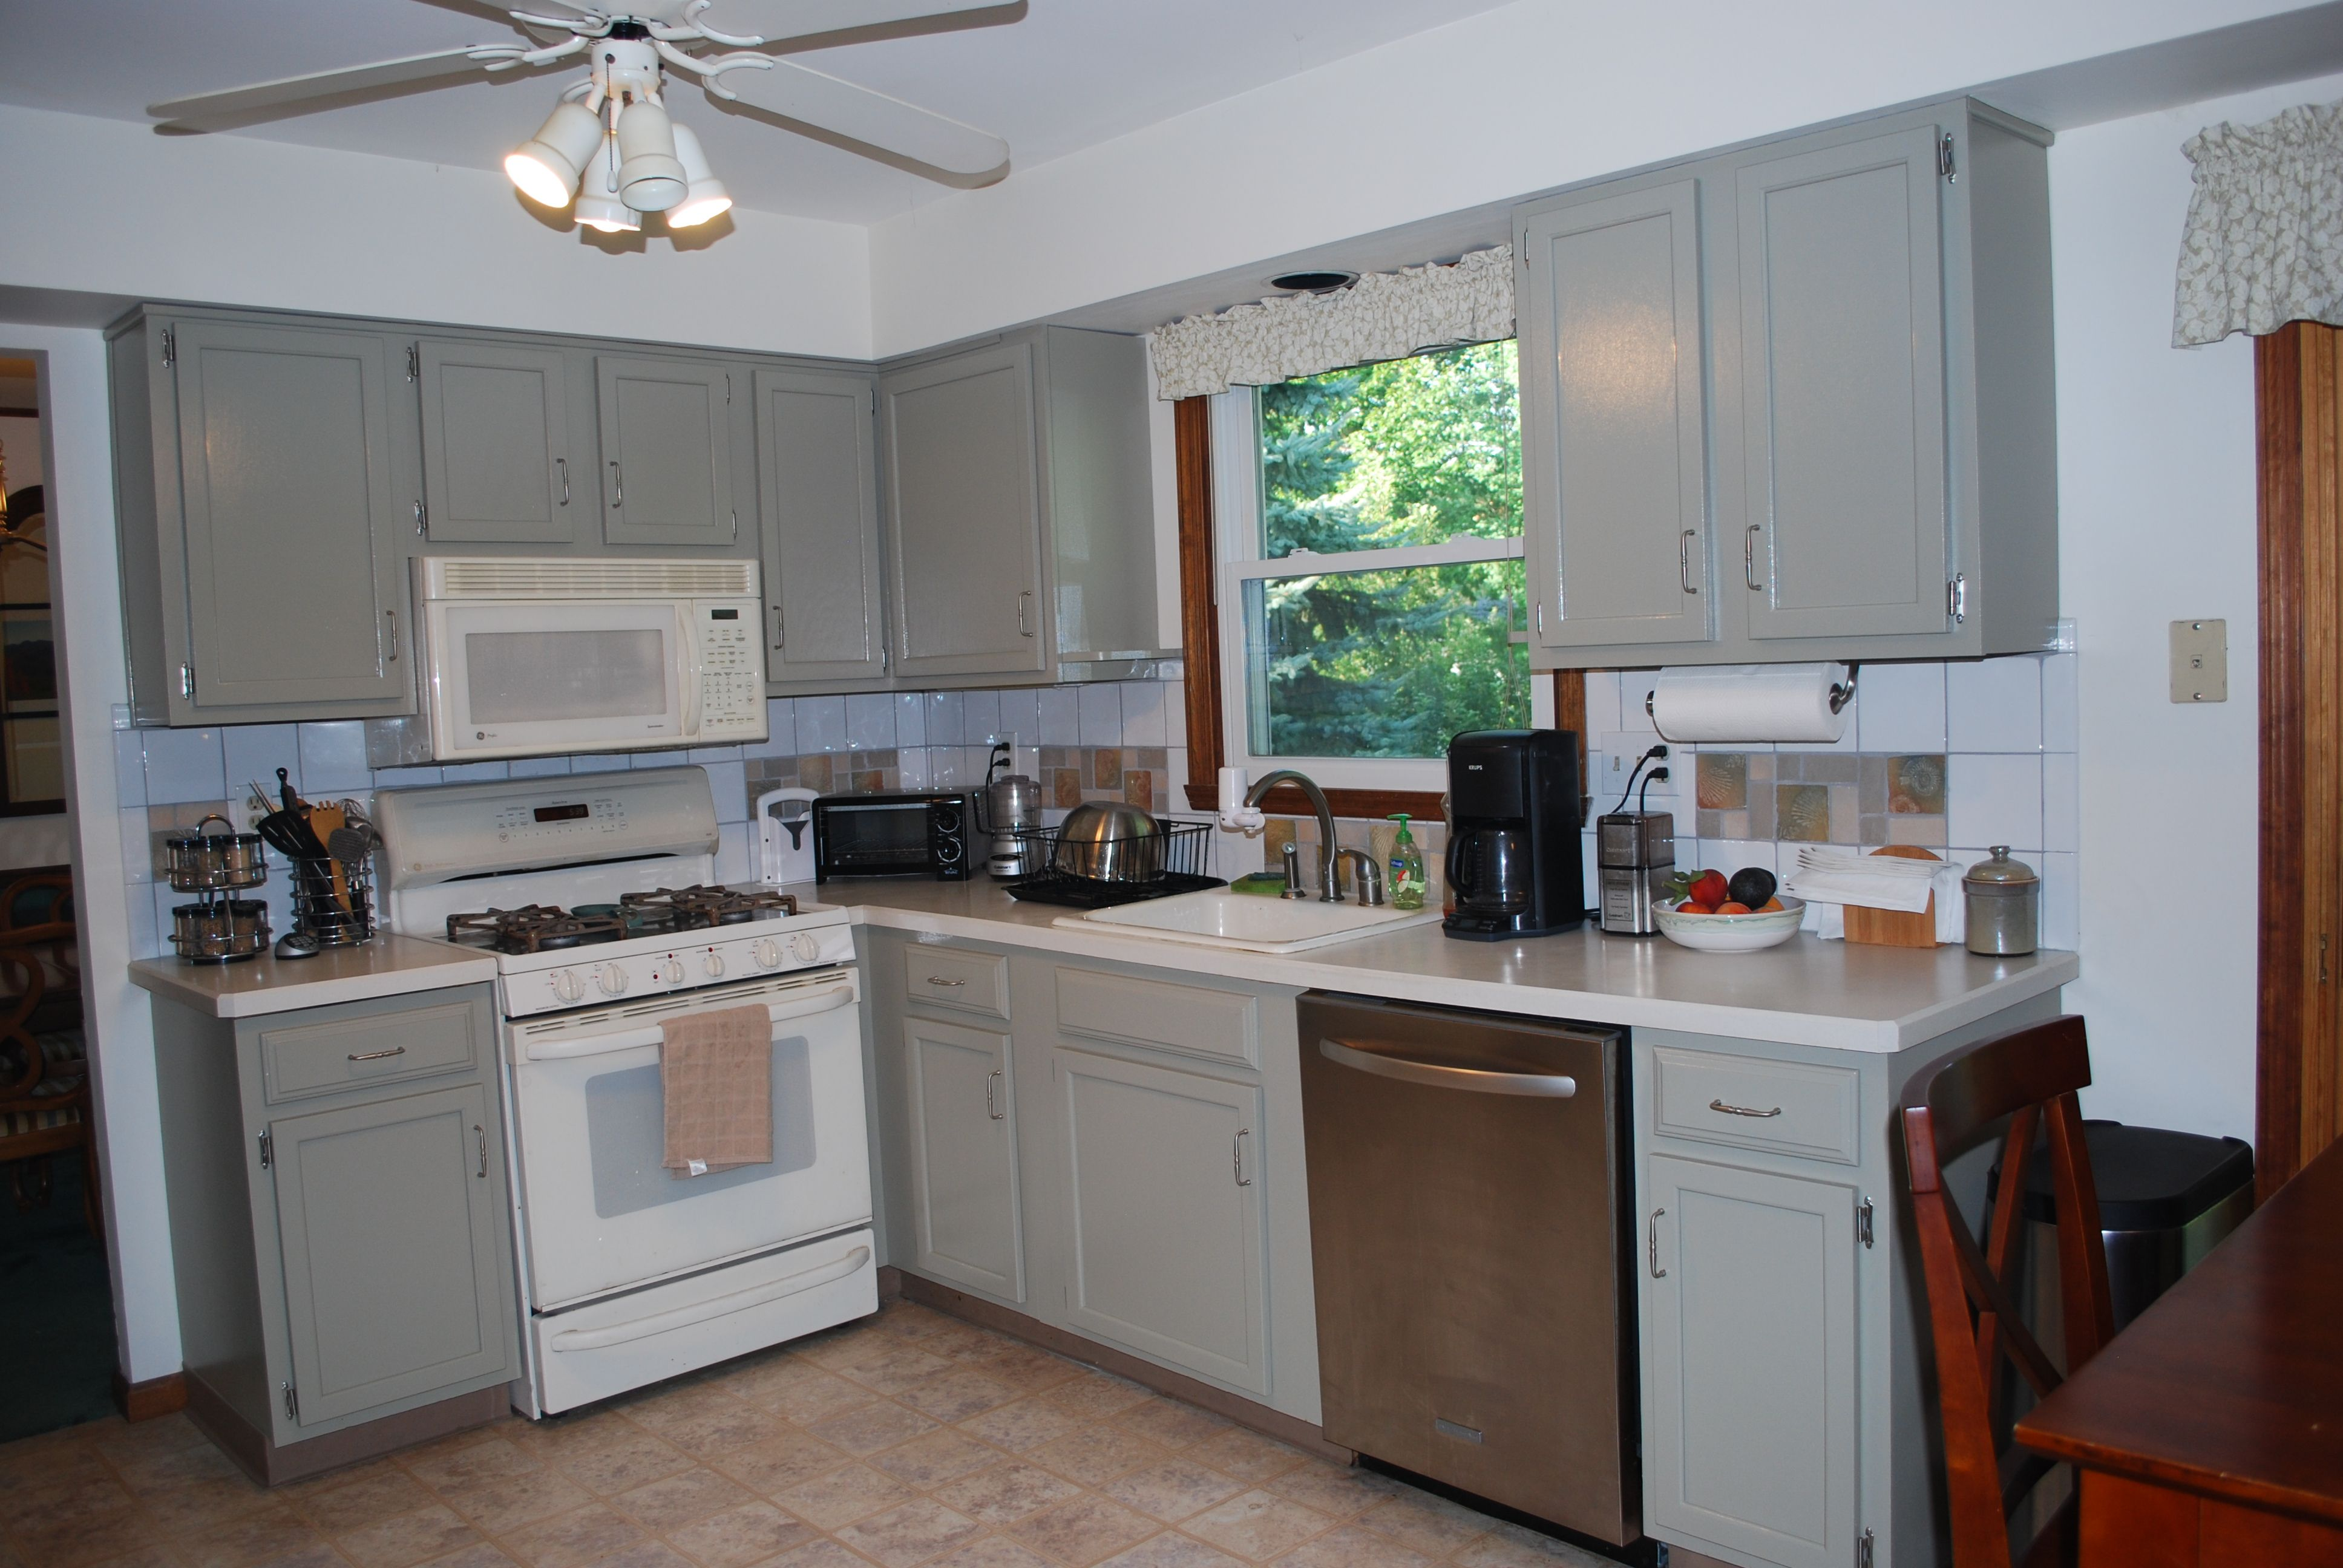 how to mixing appliance colors white and stainless - Google ...